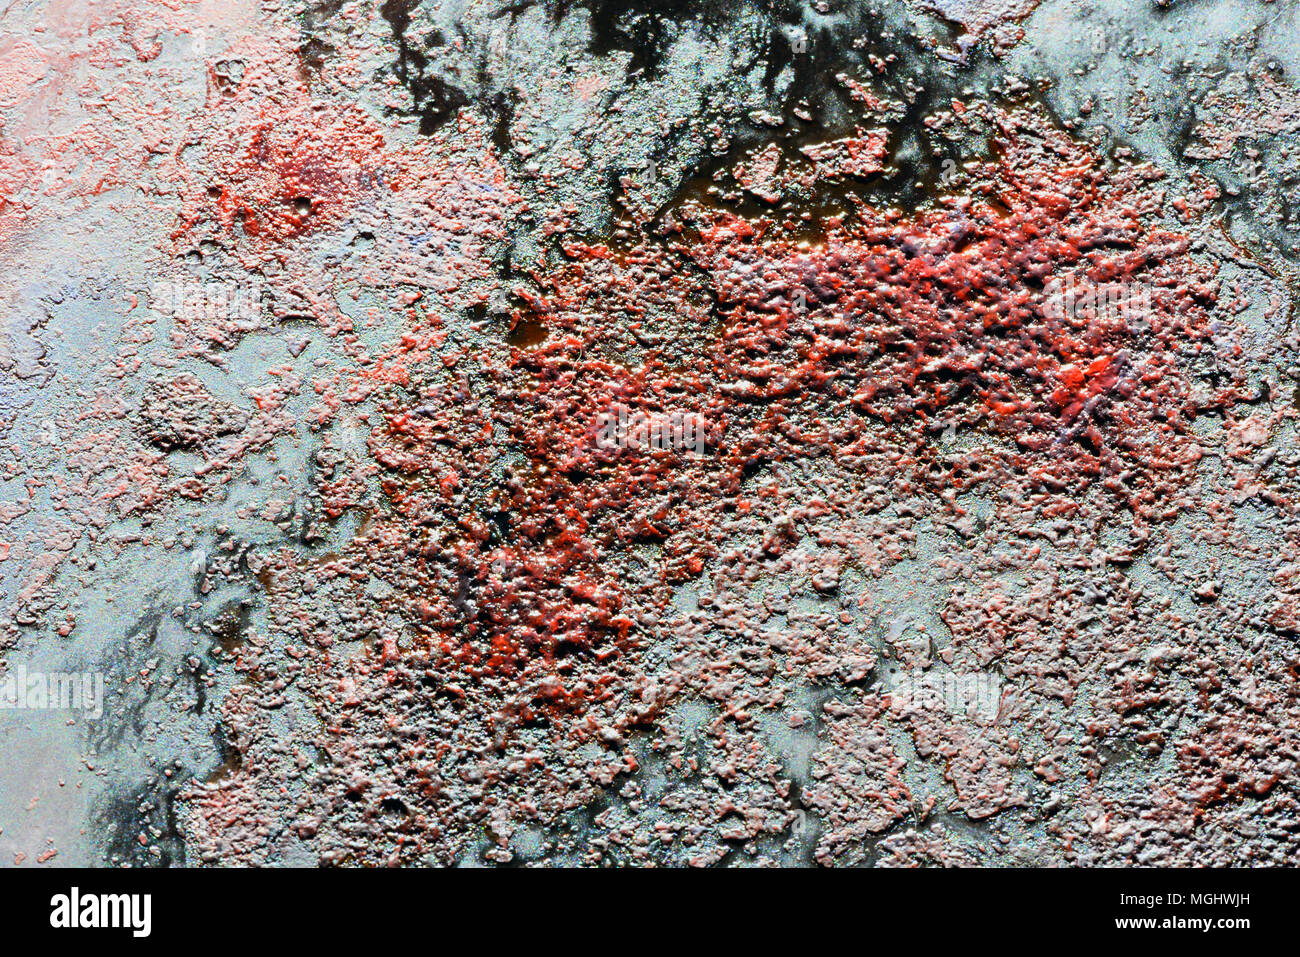 Congealed blood gunk and stained rust effect with dry flecks of organic matter and dark red and black stains Stock Photo